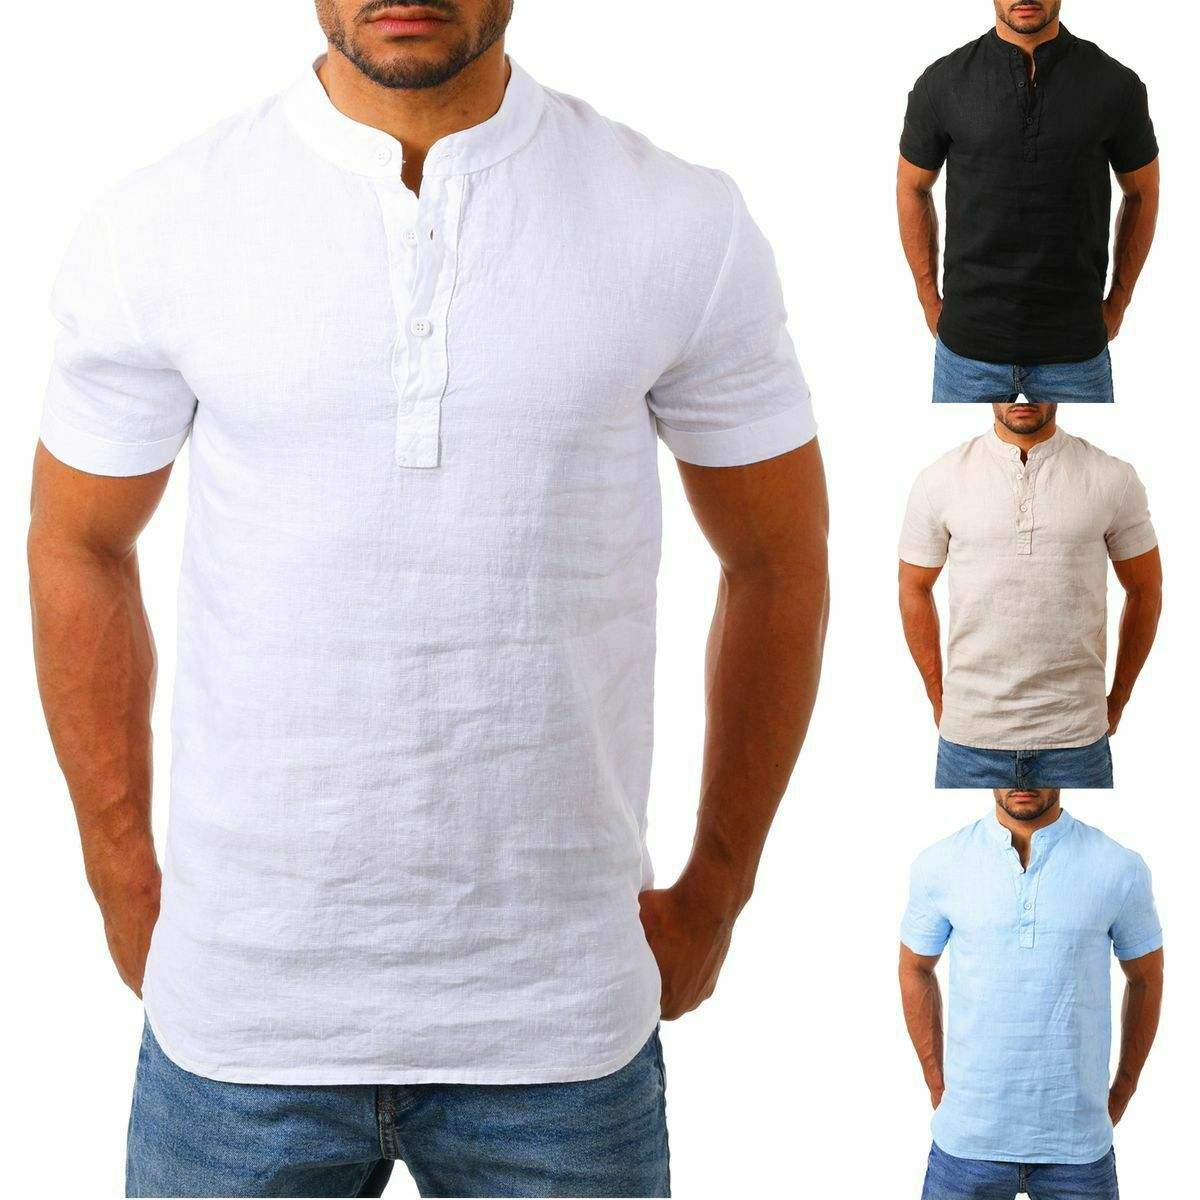 Cross Border Youth Male Clothing Cheap Pulover Shits Plus Size Cotton Linen Light Weight Stand Up Collar Button Up Shirt For Men